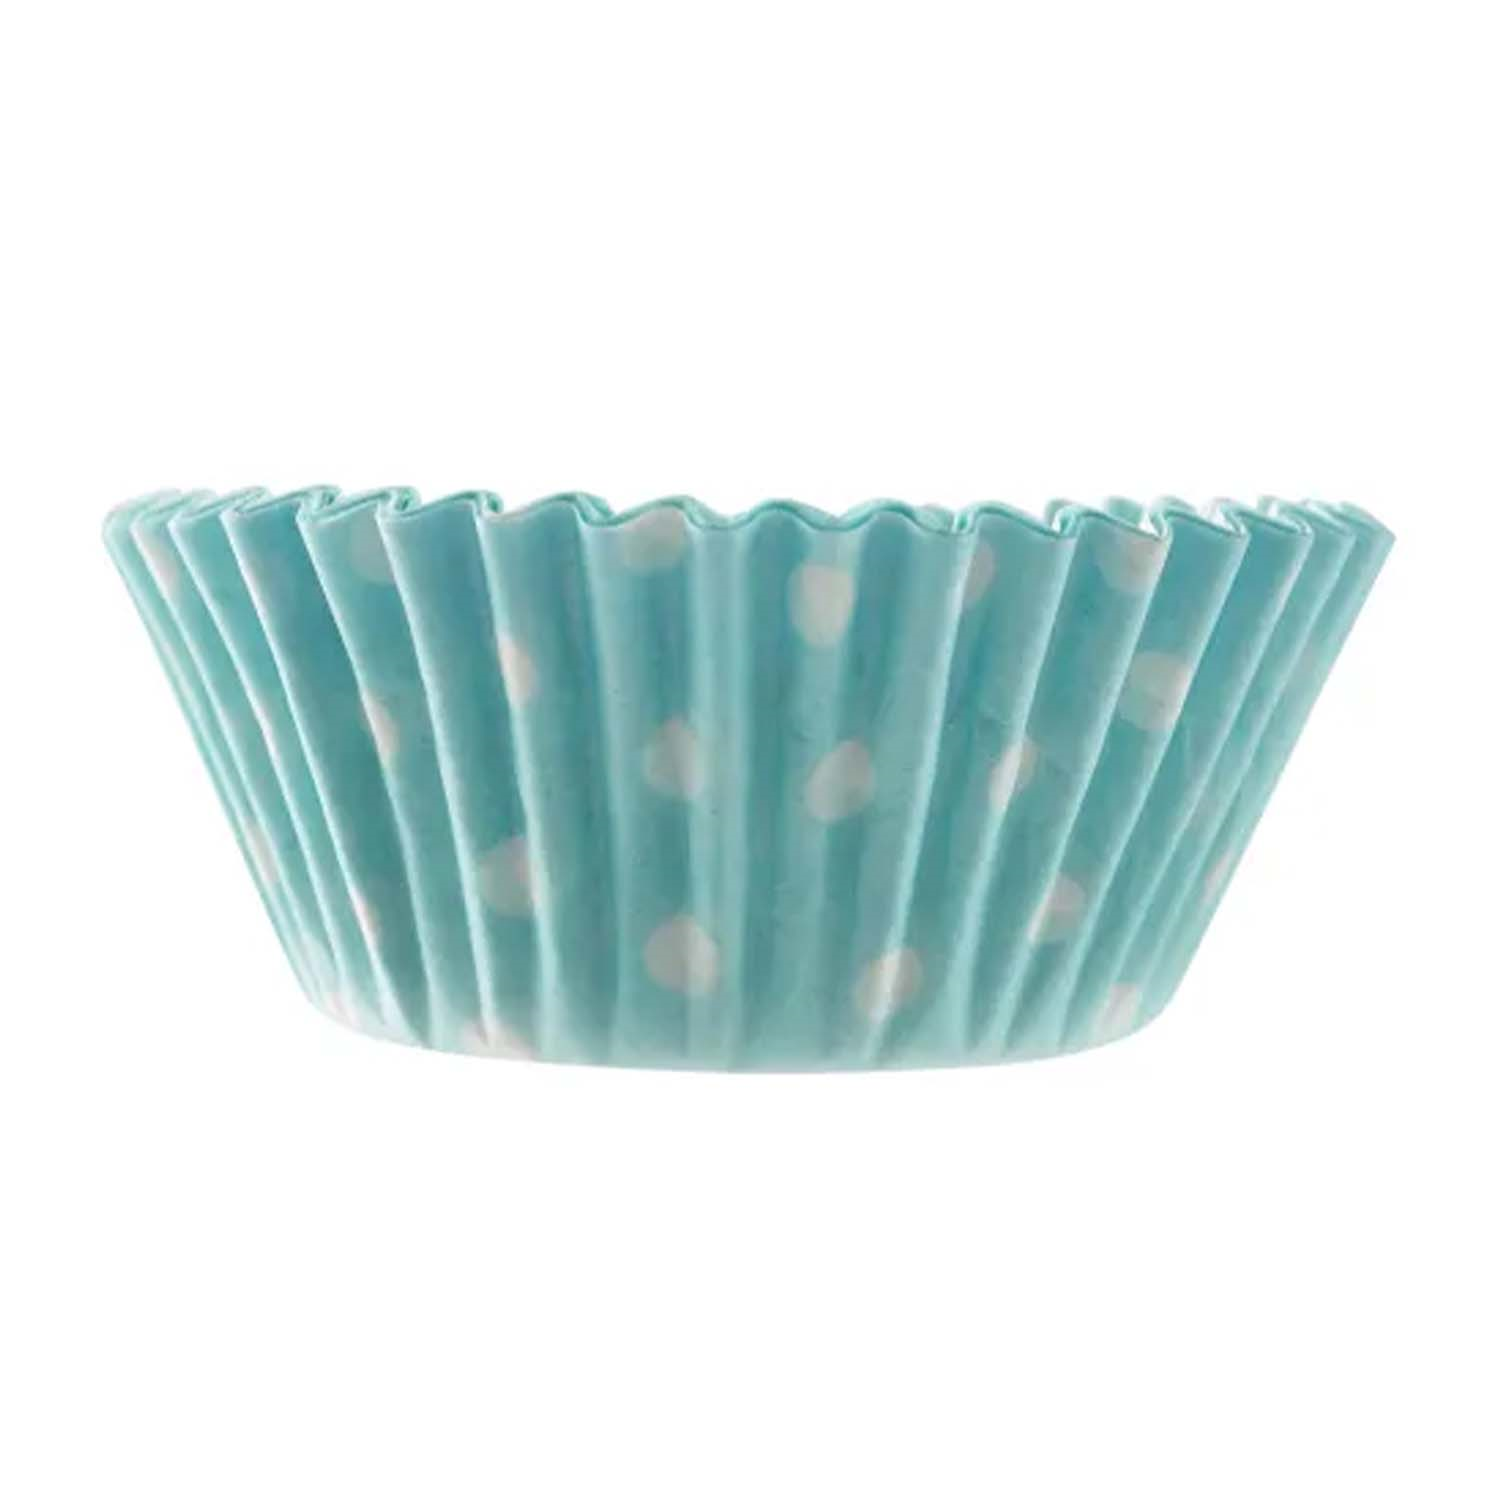 Mason Cash Polka Dot Cupcake Cases 40 Pack